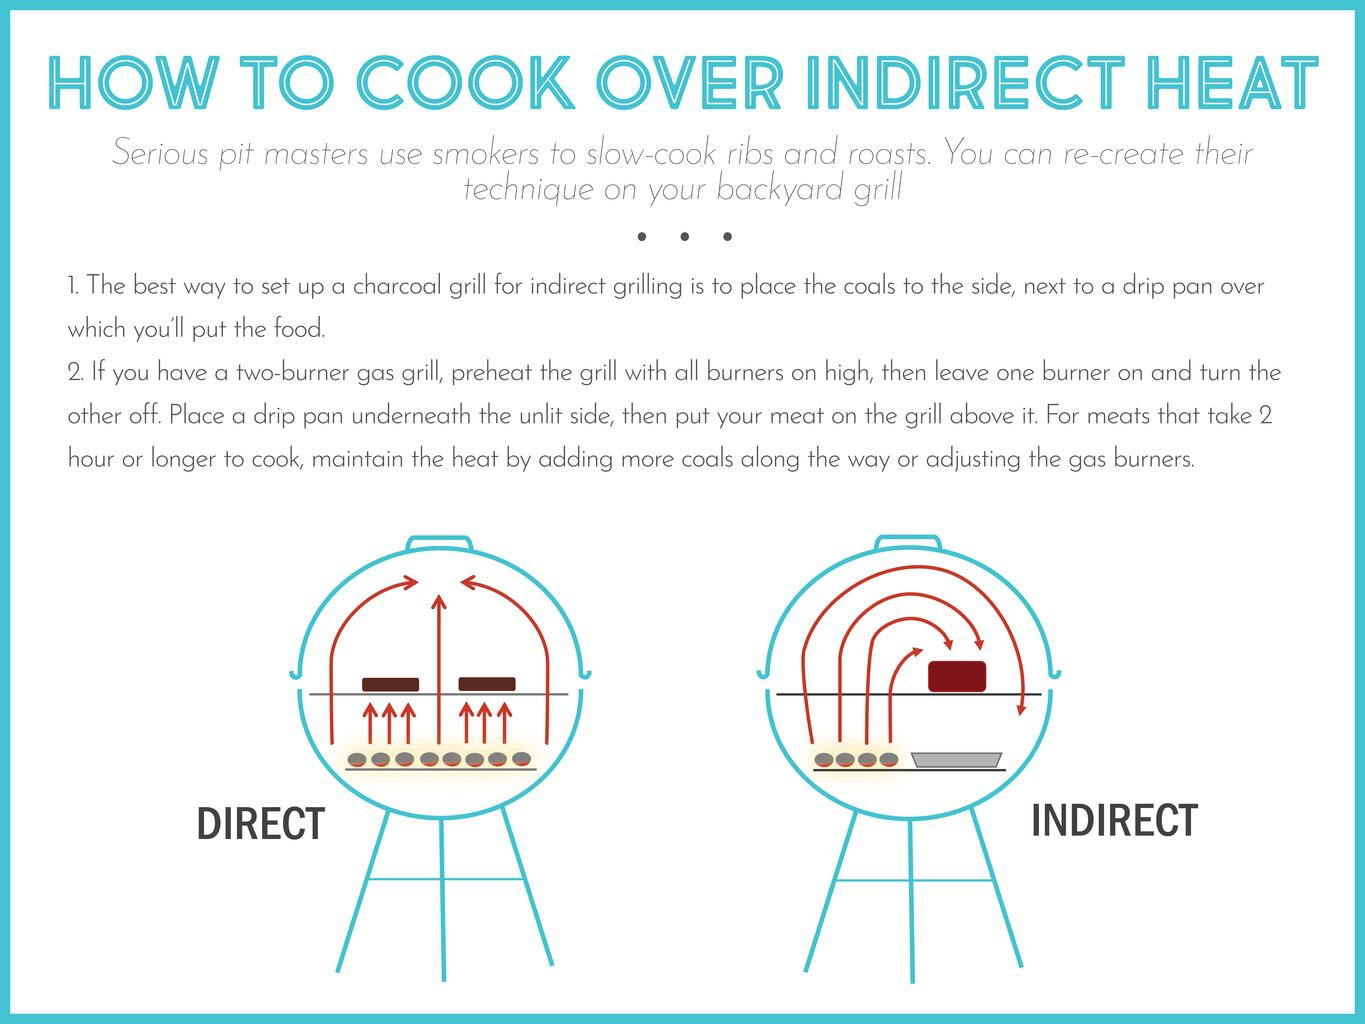 HOW TO COOK OVER INDIRECT HEAT graphic image